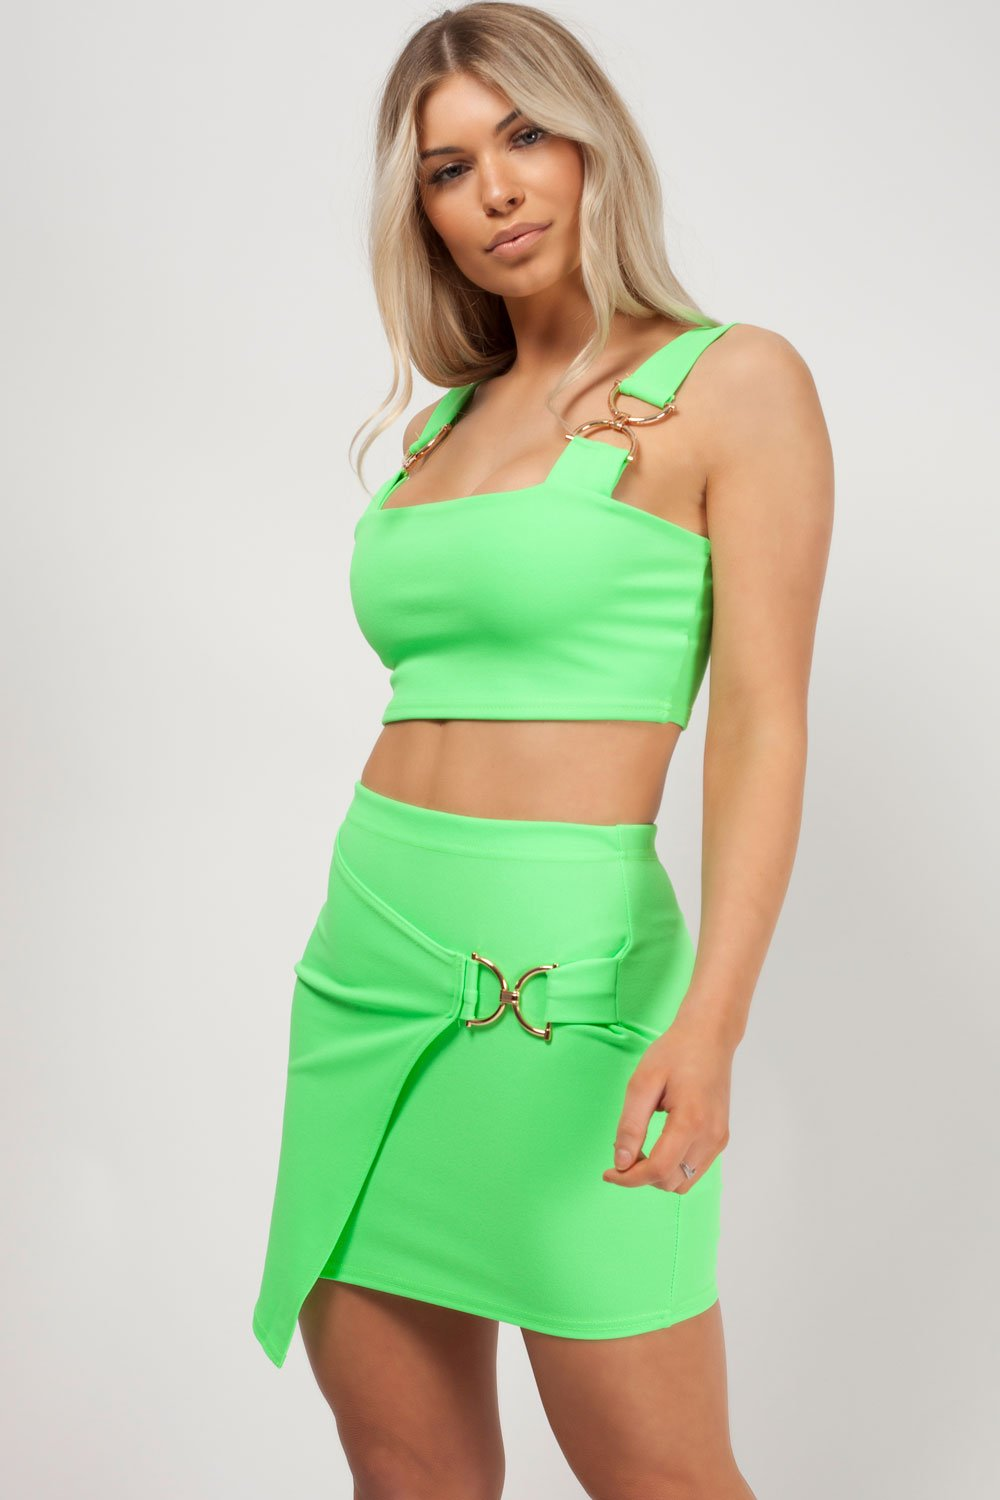 skirt co ord neon green styledup fashion